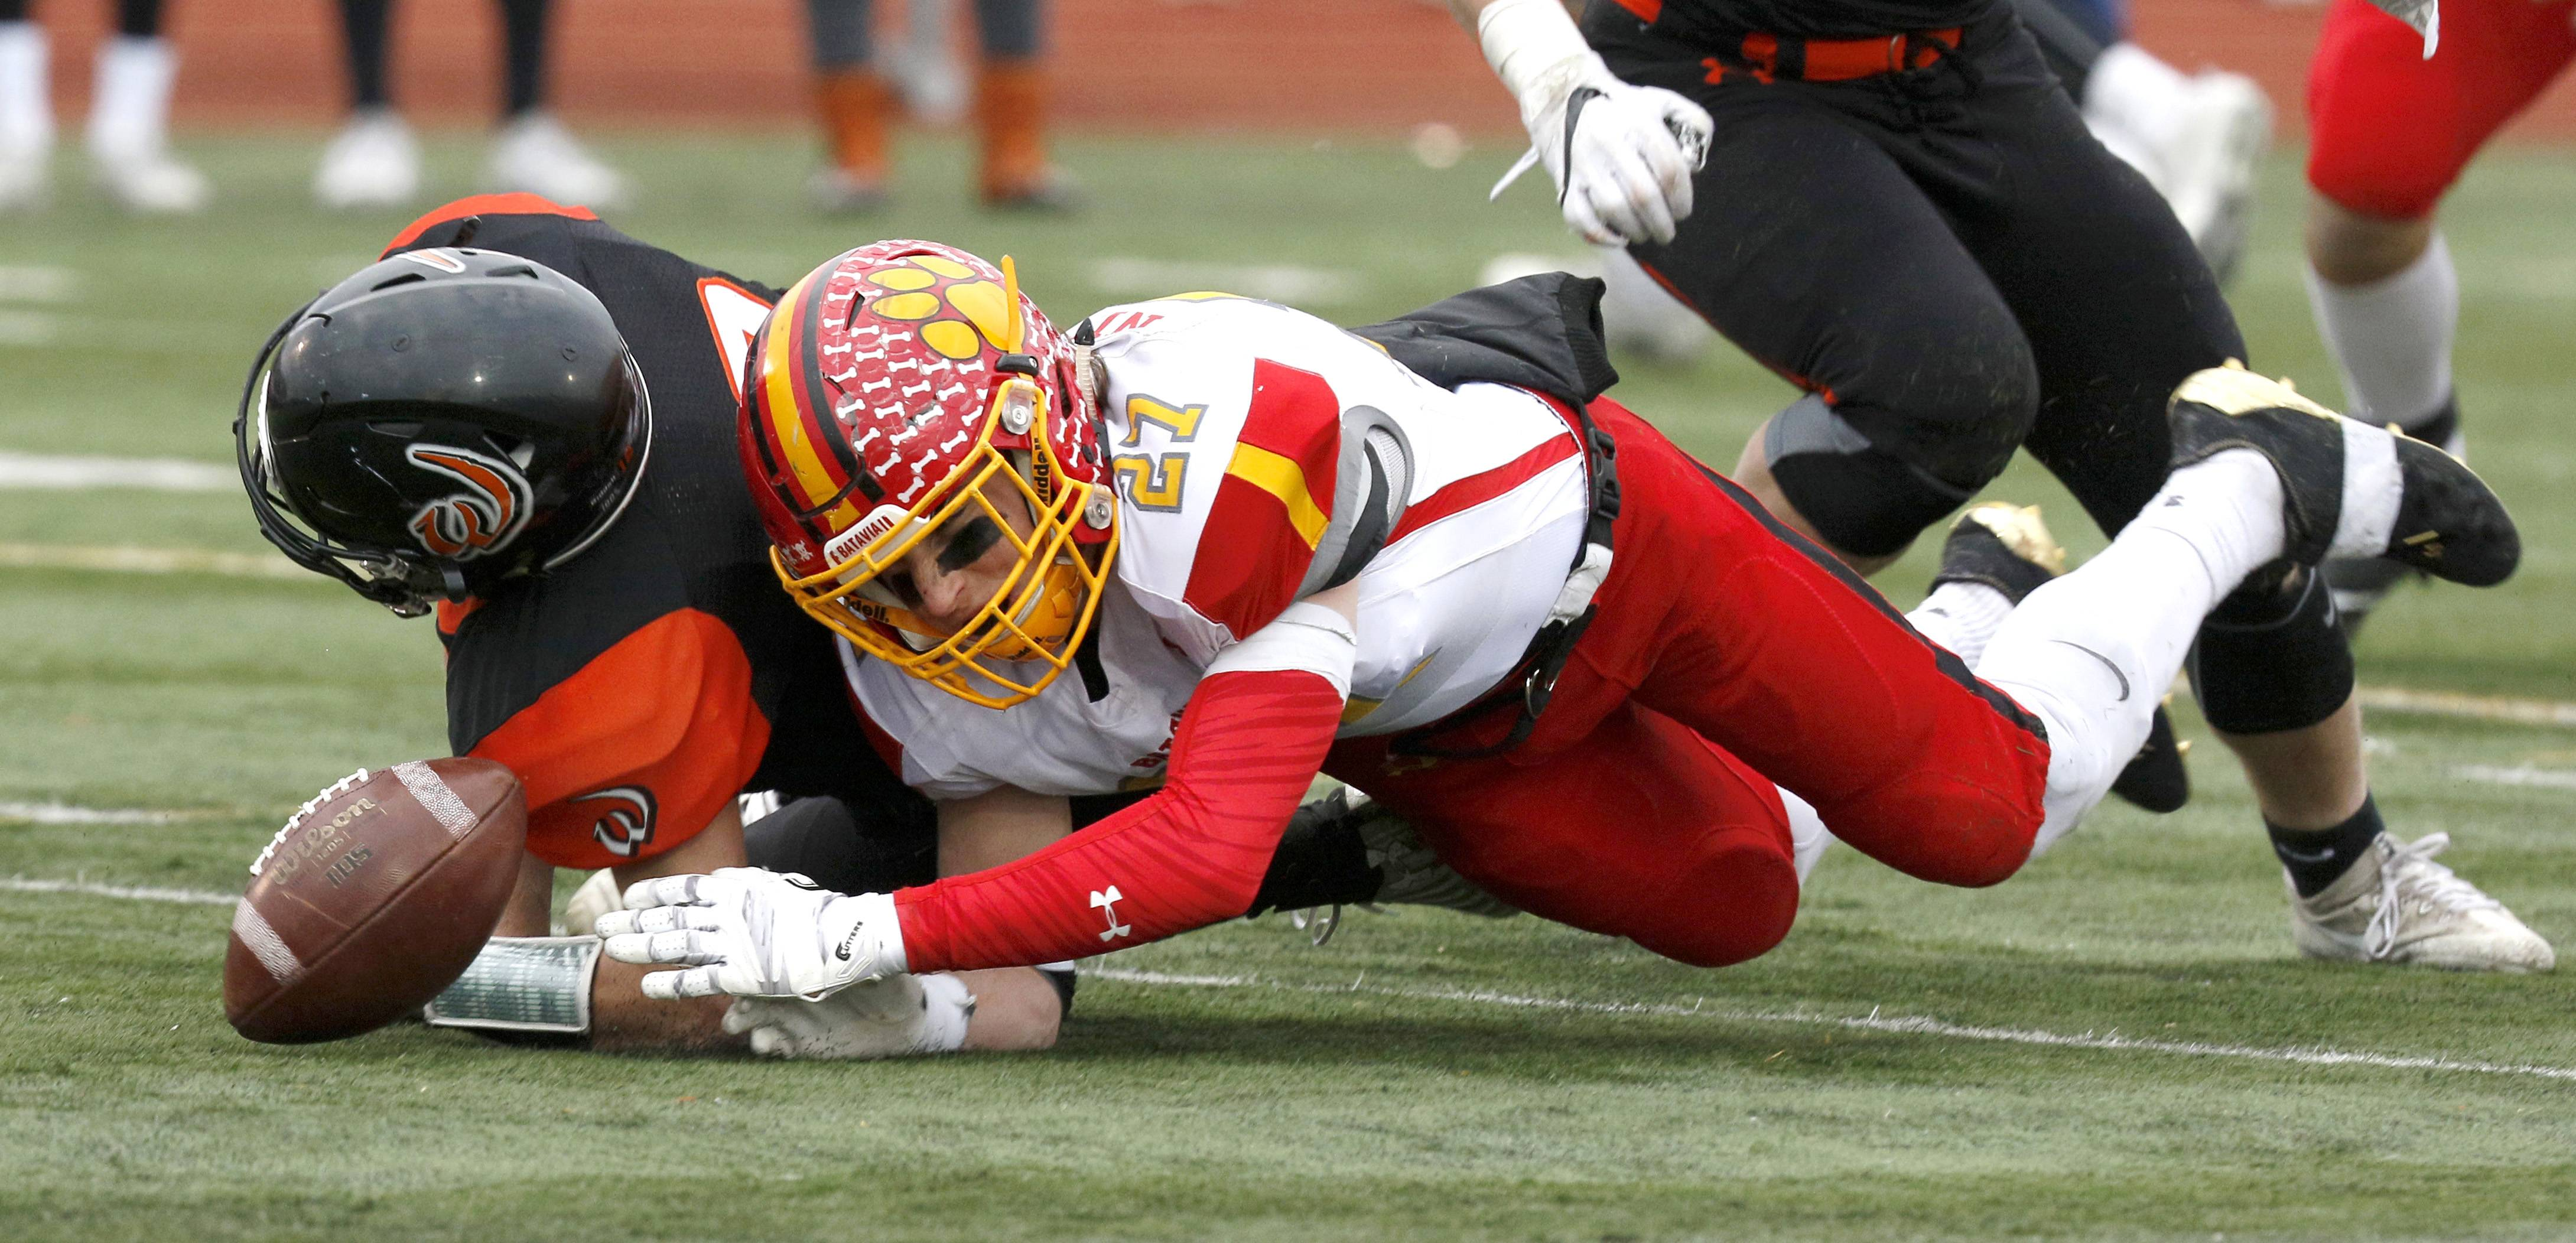 Batavia's Michael Niemiec (27) fights for a fumbled ball by Lincoln-Way West quarterback Anthony Senerchia during Class 7A football quarterfinal action in New Lenox.